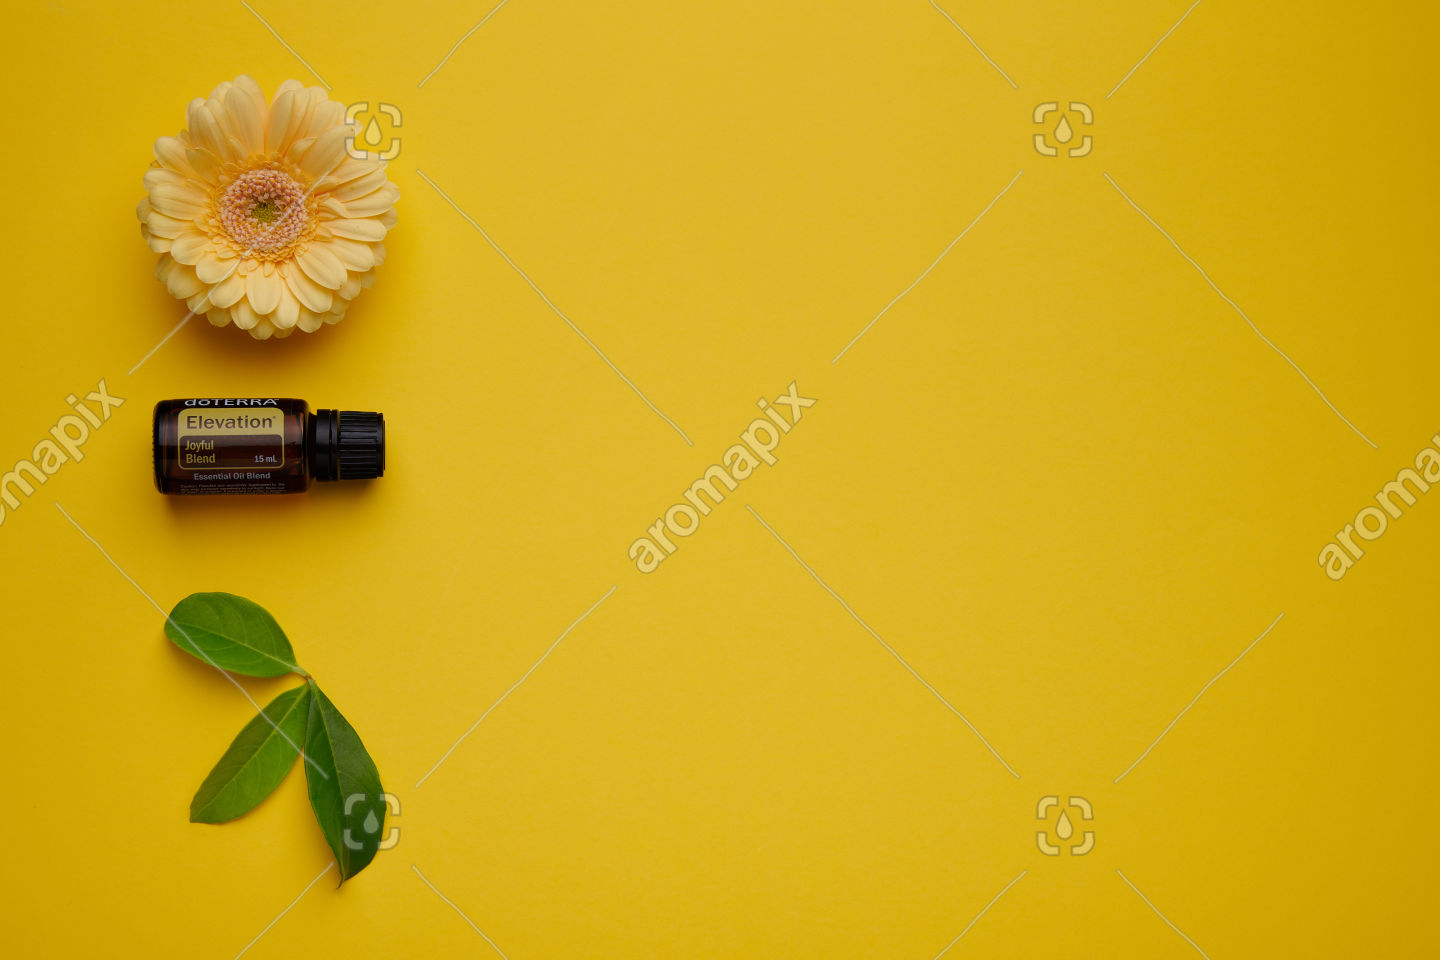 doTERRA Elevation with flowers and leaves on yellow